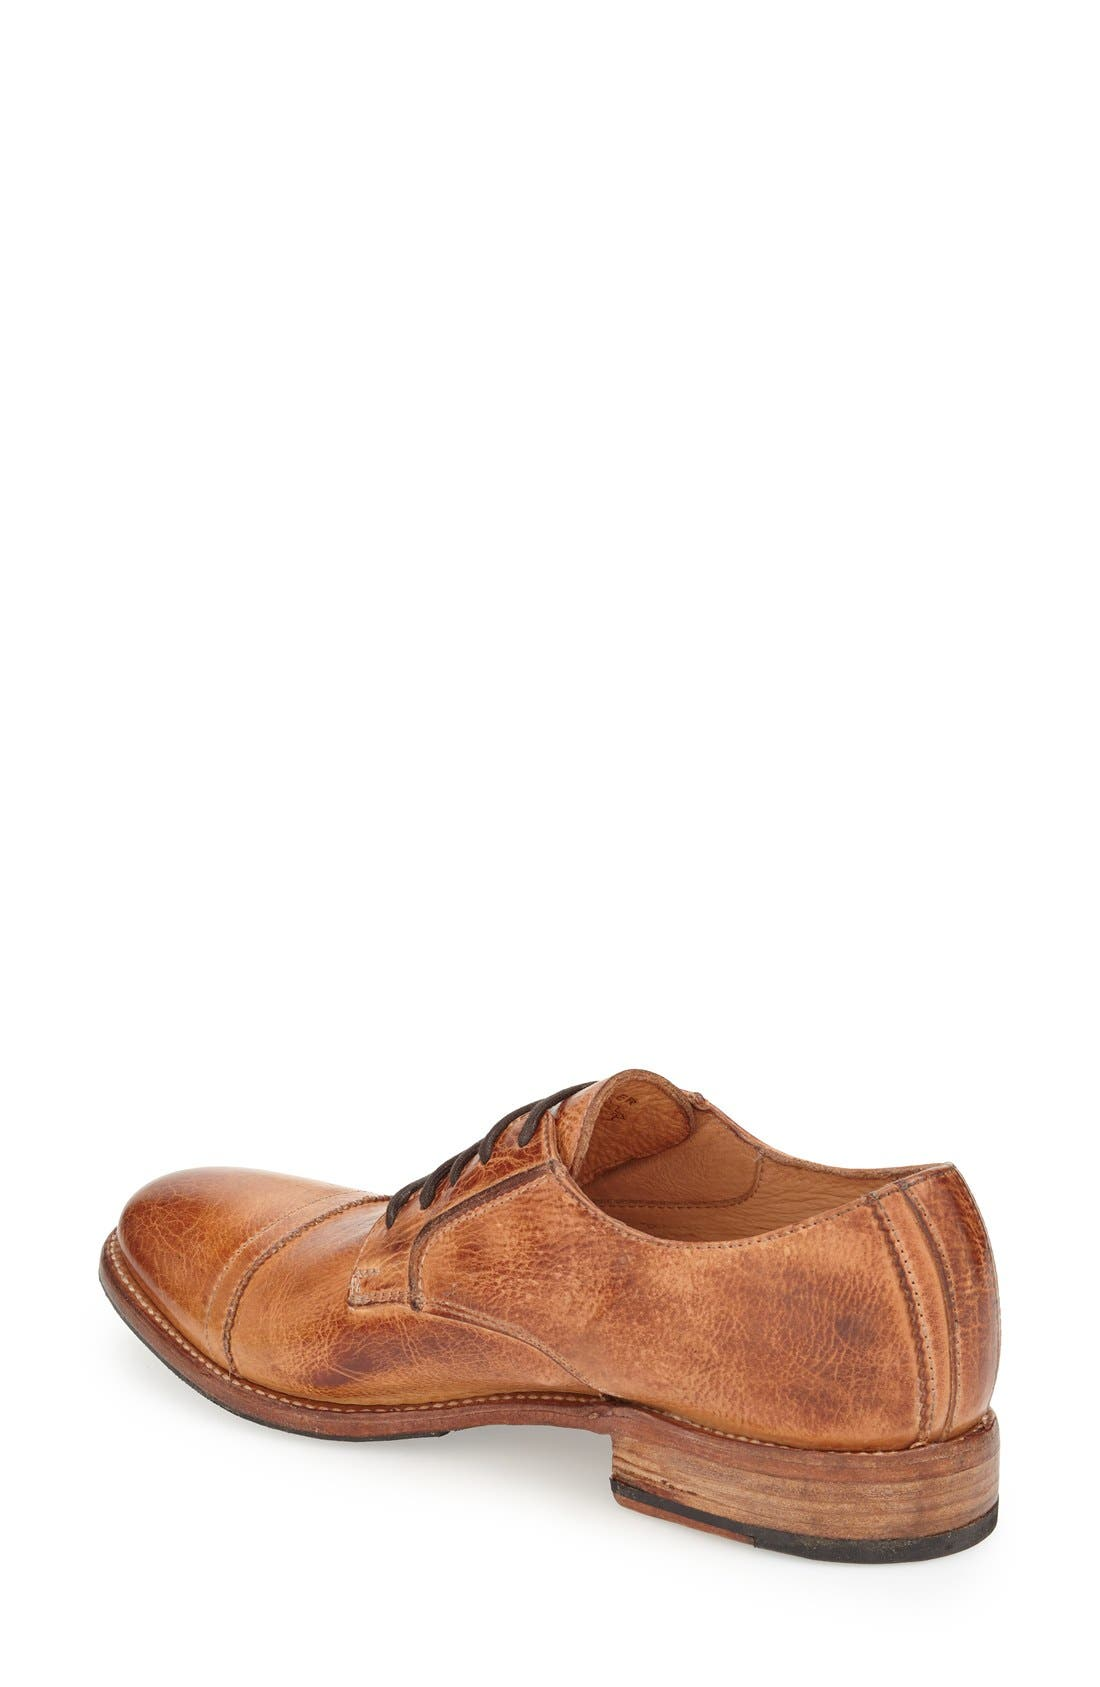 'Diorite' Cap Toe Derby,                             Alternate thumbnail 2, color,                             Cognac Leather